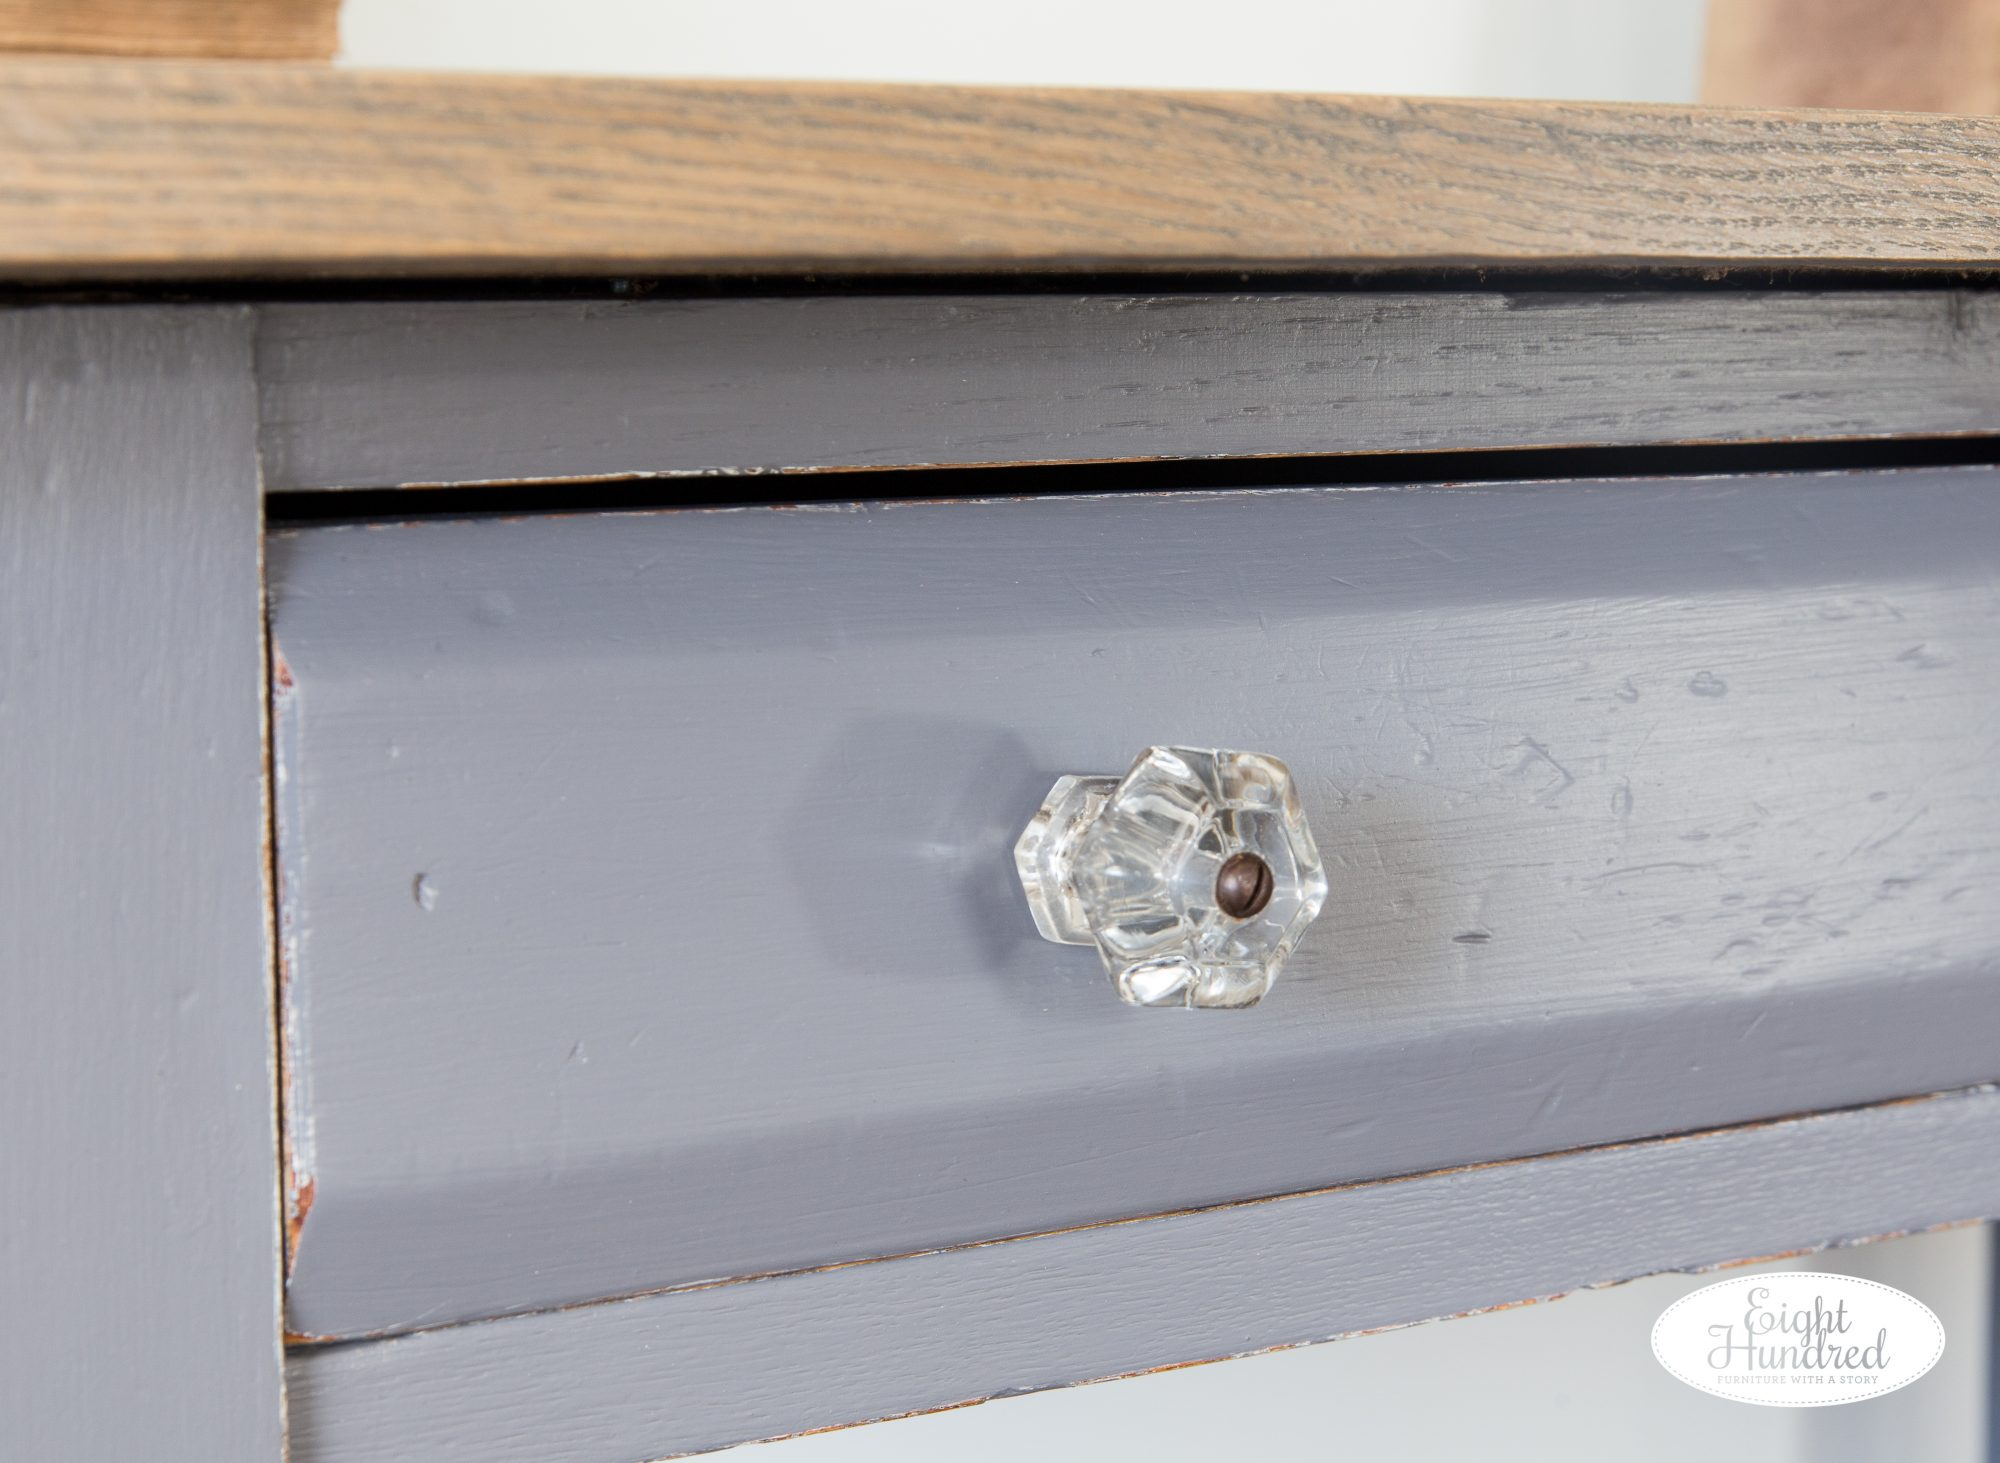 Antique glass knob on drawer of antique table painted in Driftwood Milk Paint